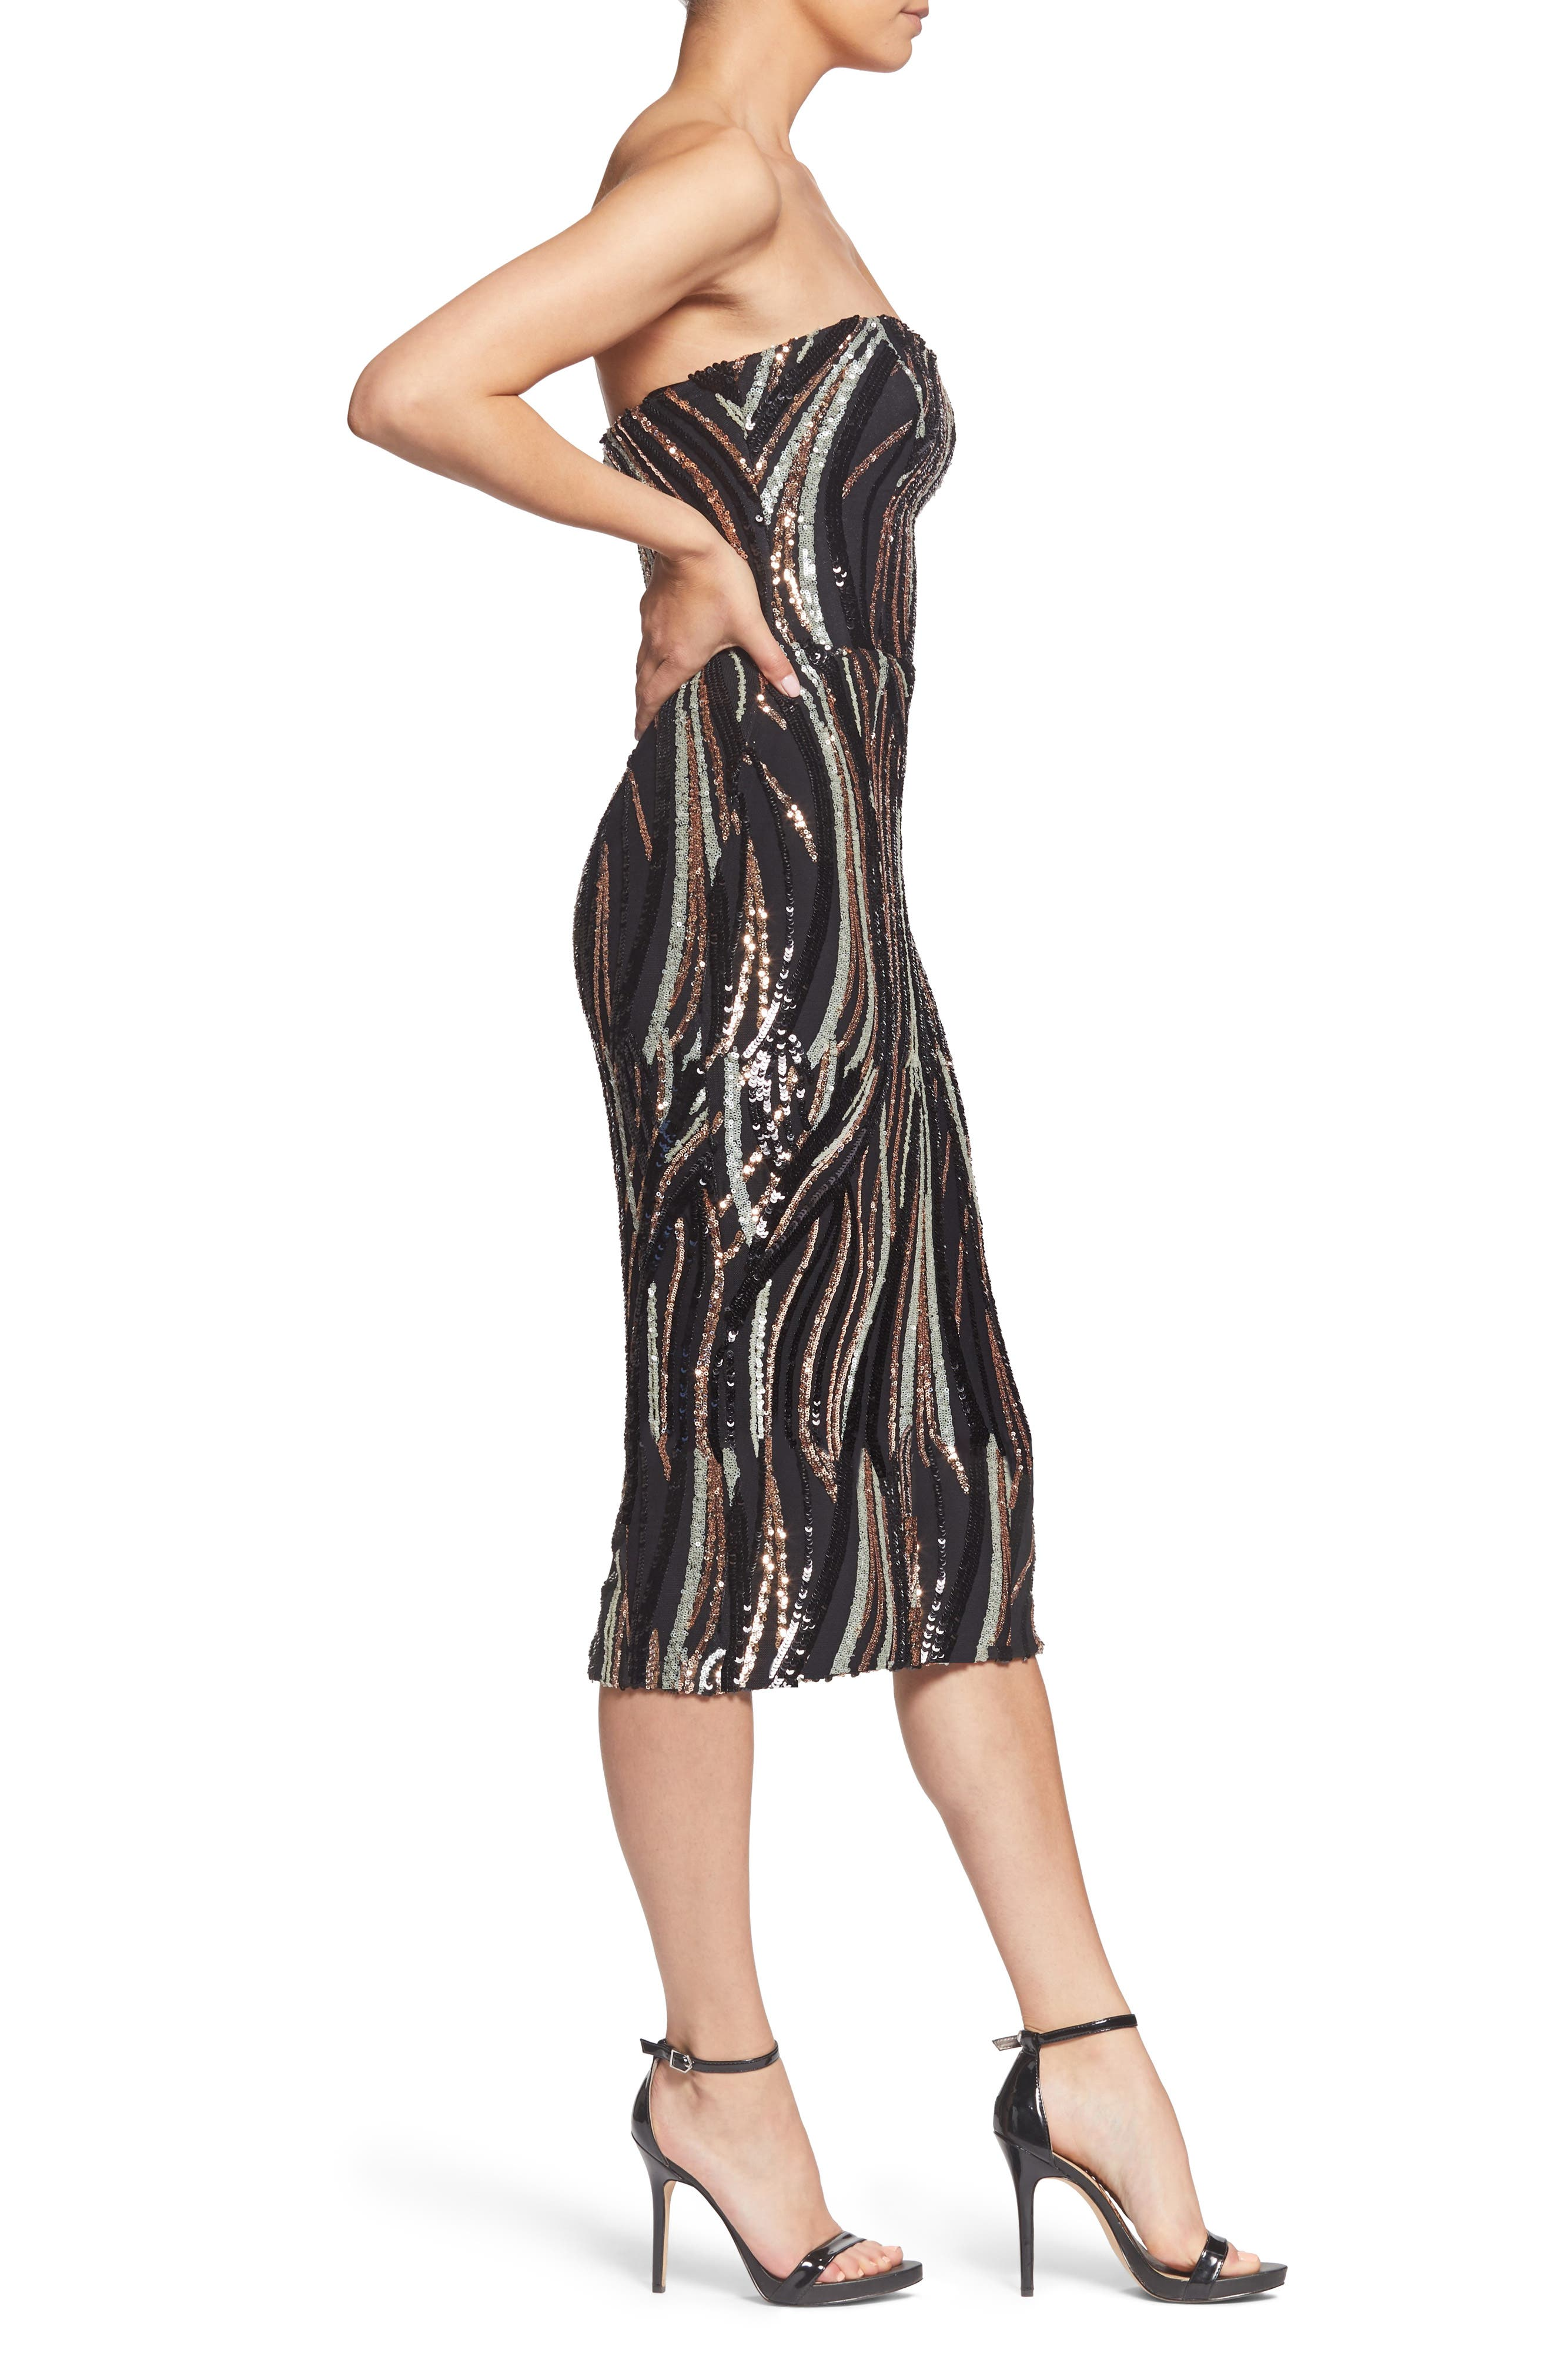 Claire Swirl Stripe Strapless Body-Con Dress,                             Alternate thumbnail 3, color,                             BLACK/ BRONZE/ BONE